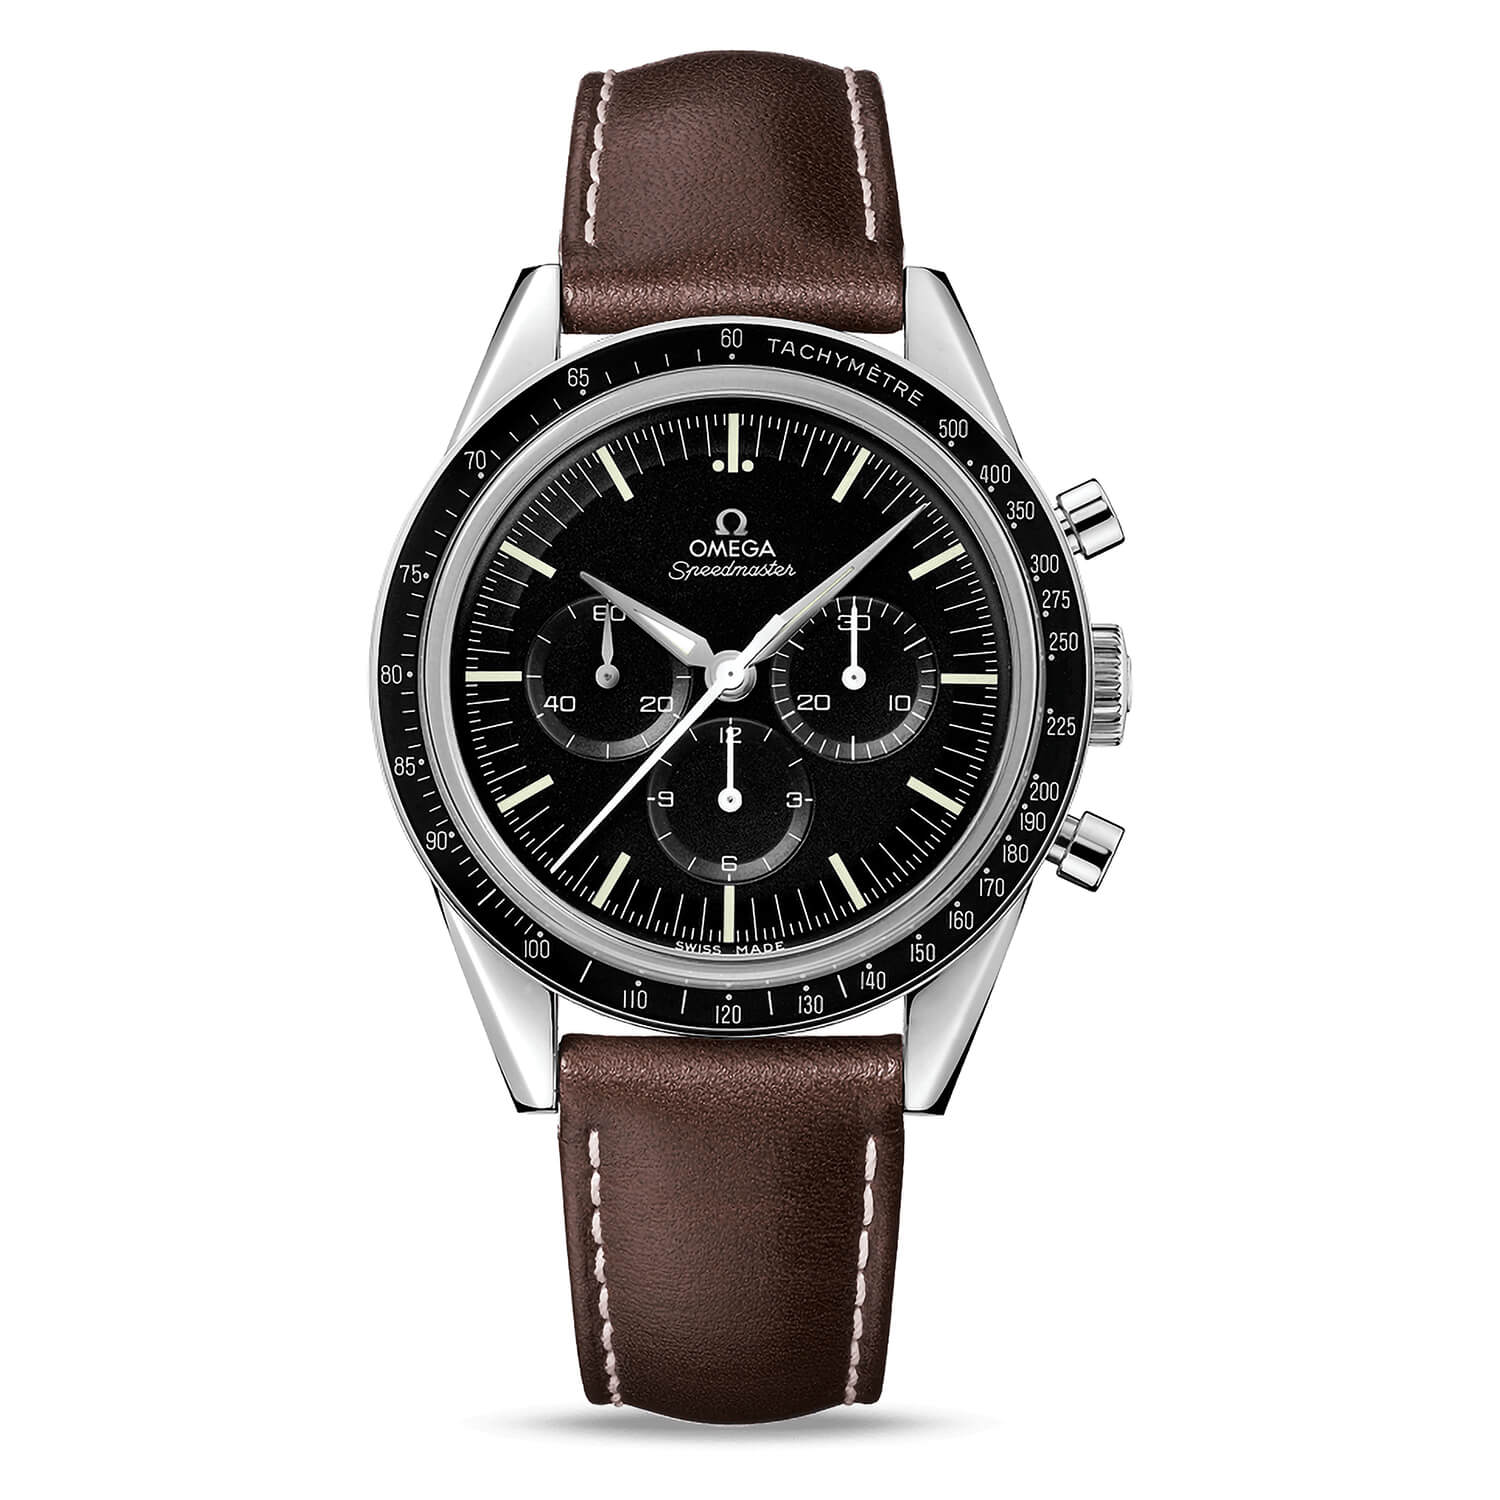 Omega Speedmaster Moon Watch On Strap 'First Omega In Space'